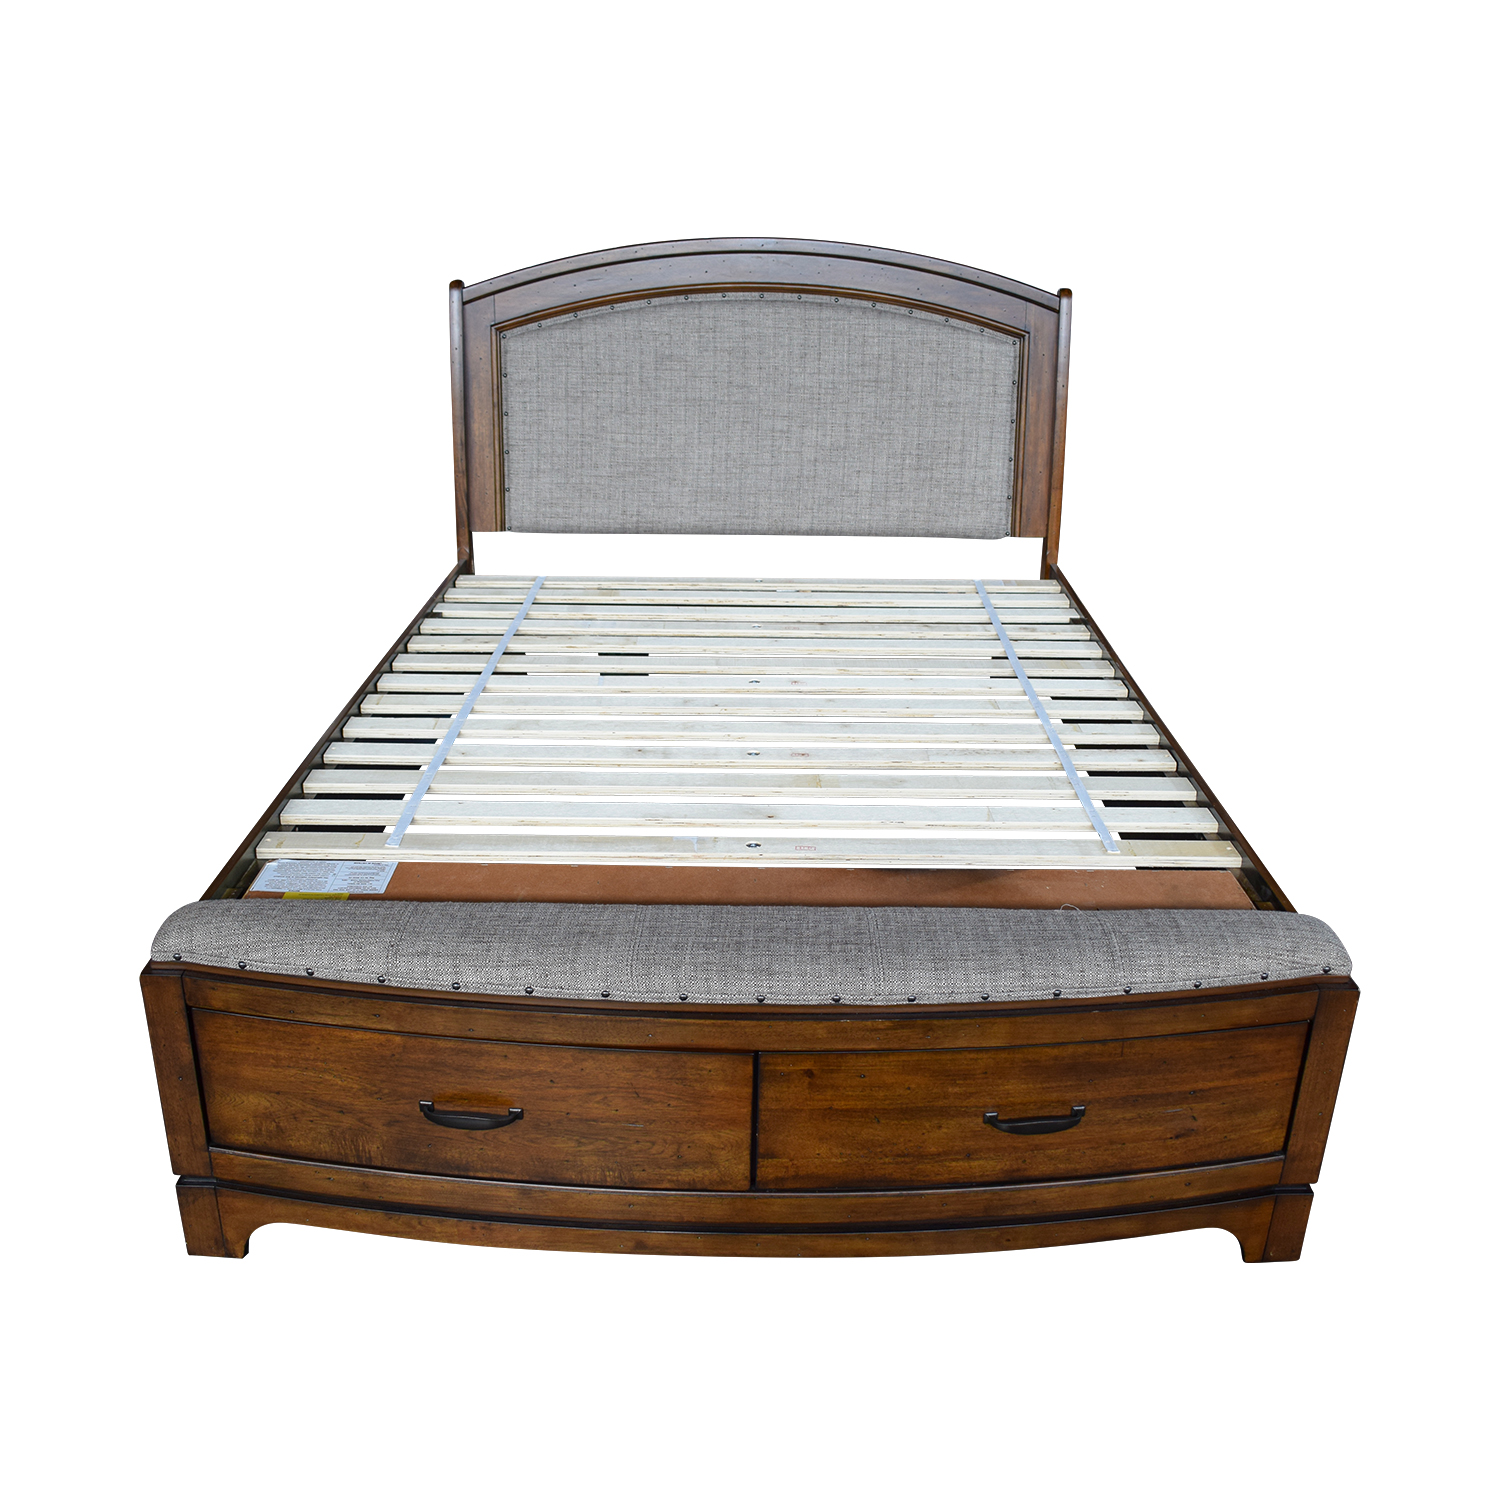 Queen Tufted Wooden Storage Bed on sale